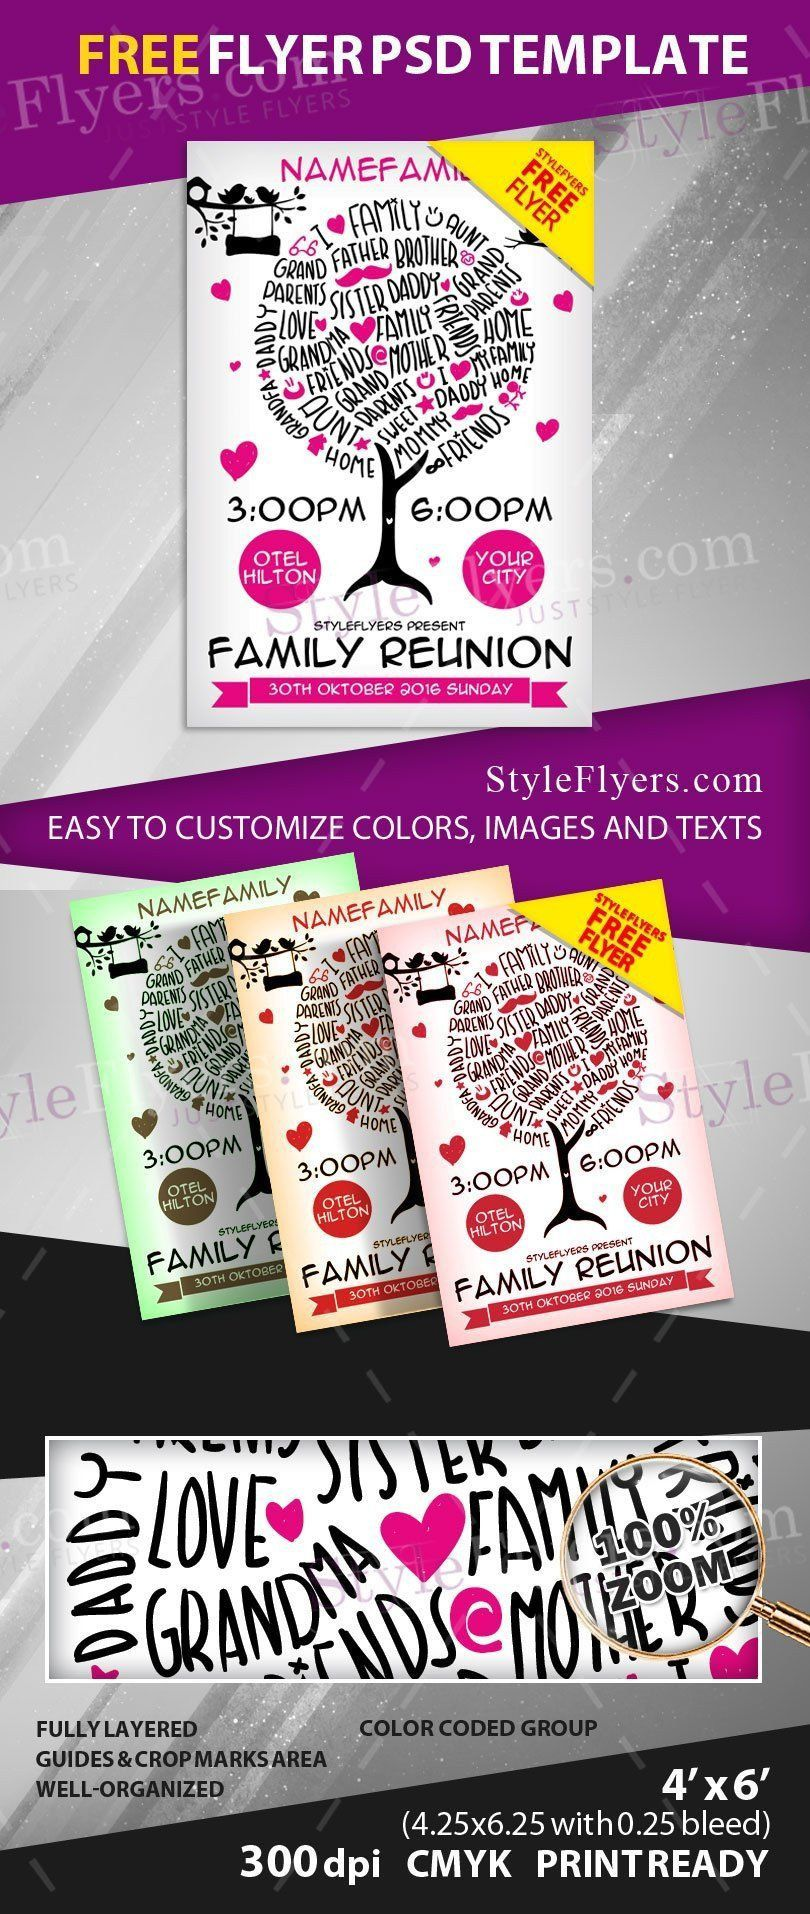 004 Amazing Family Reunion Flyer Template Word High Def Full